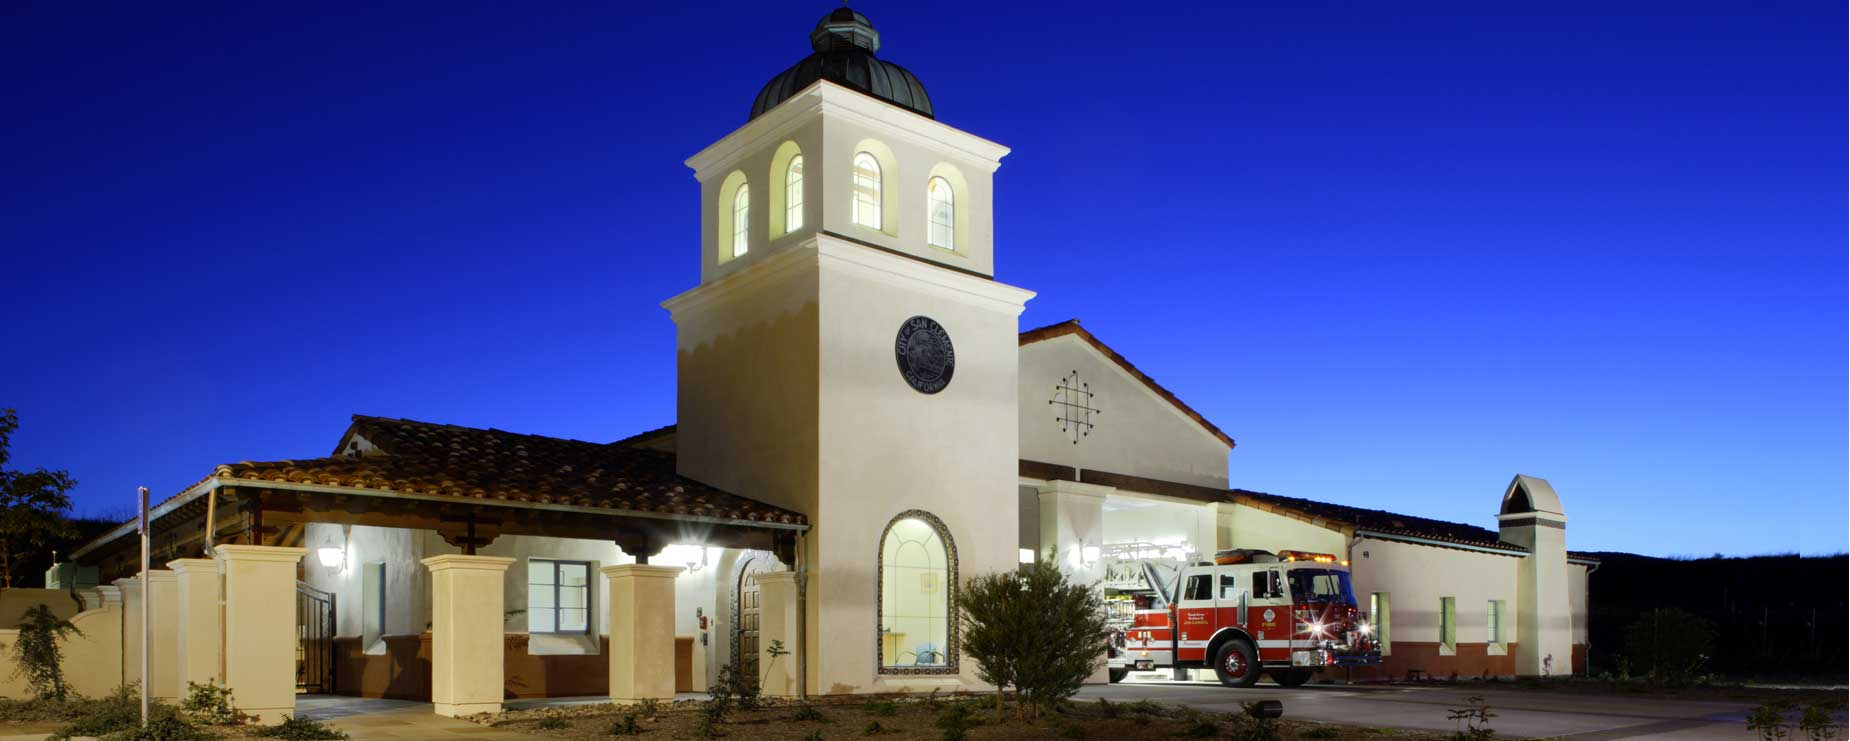 Orange County Fire Authority Station #59